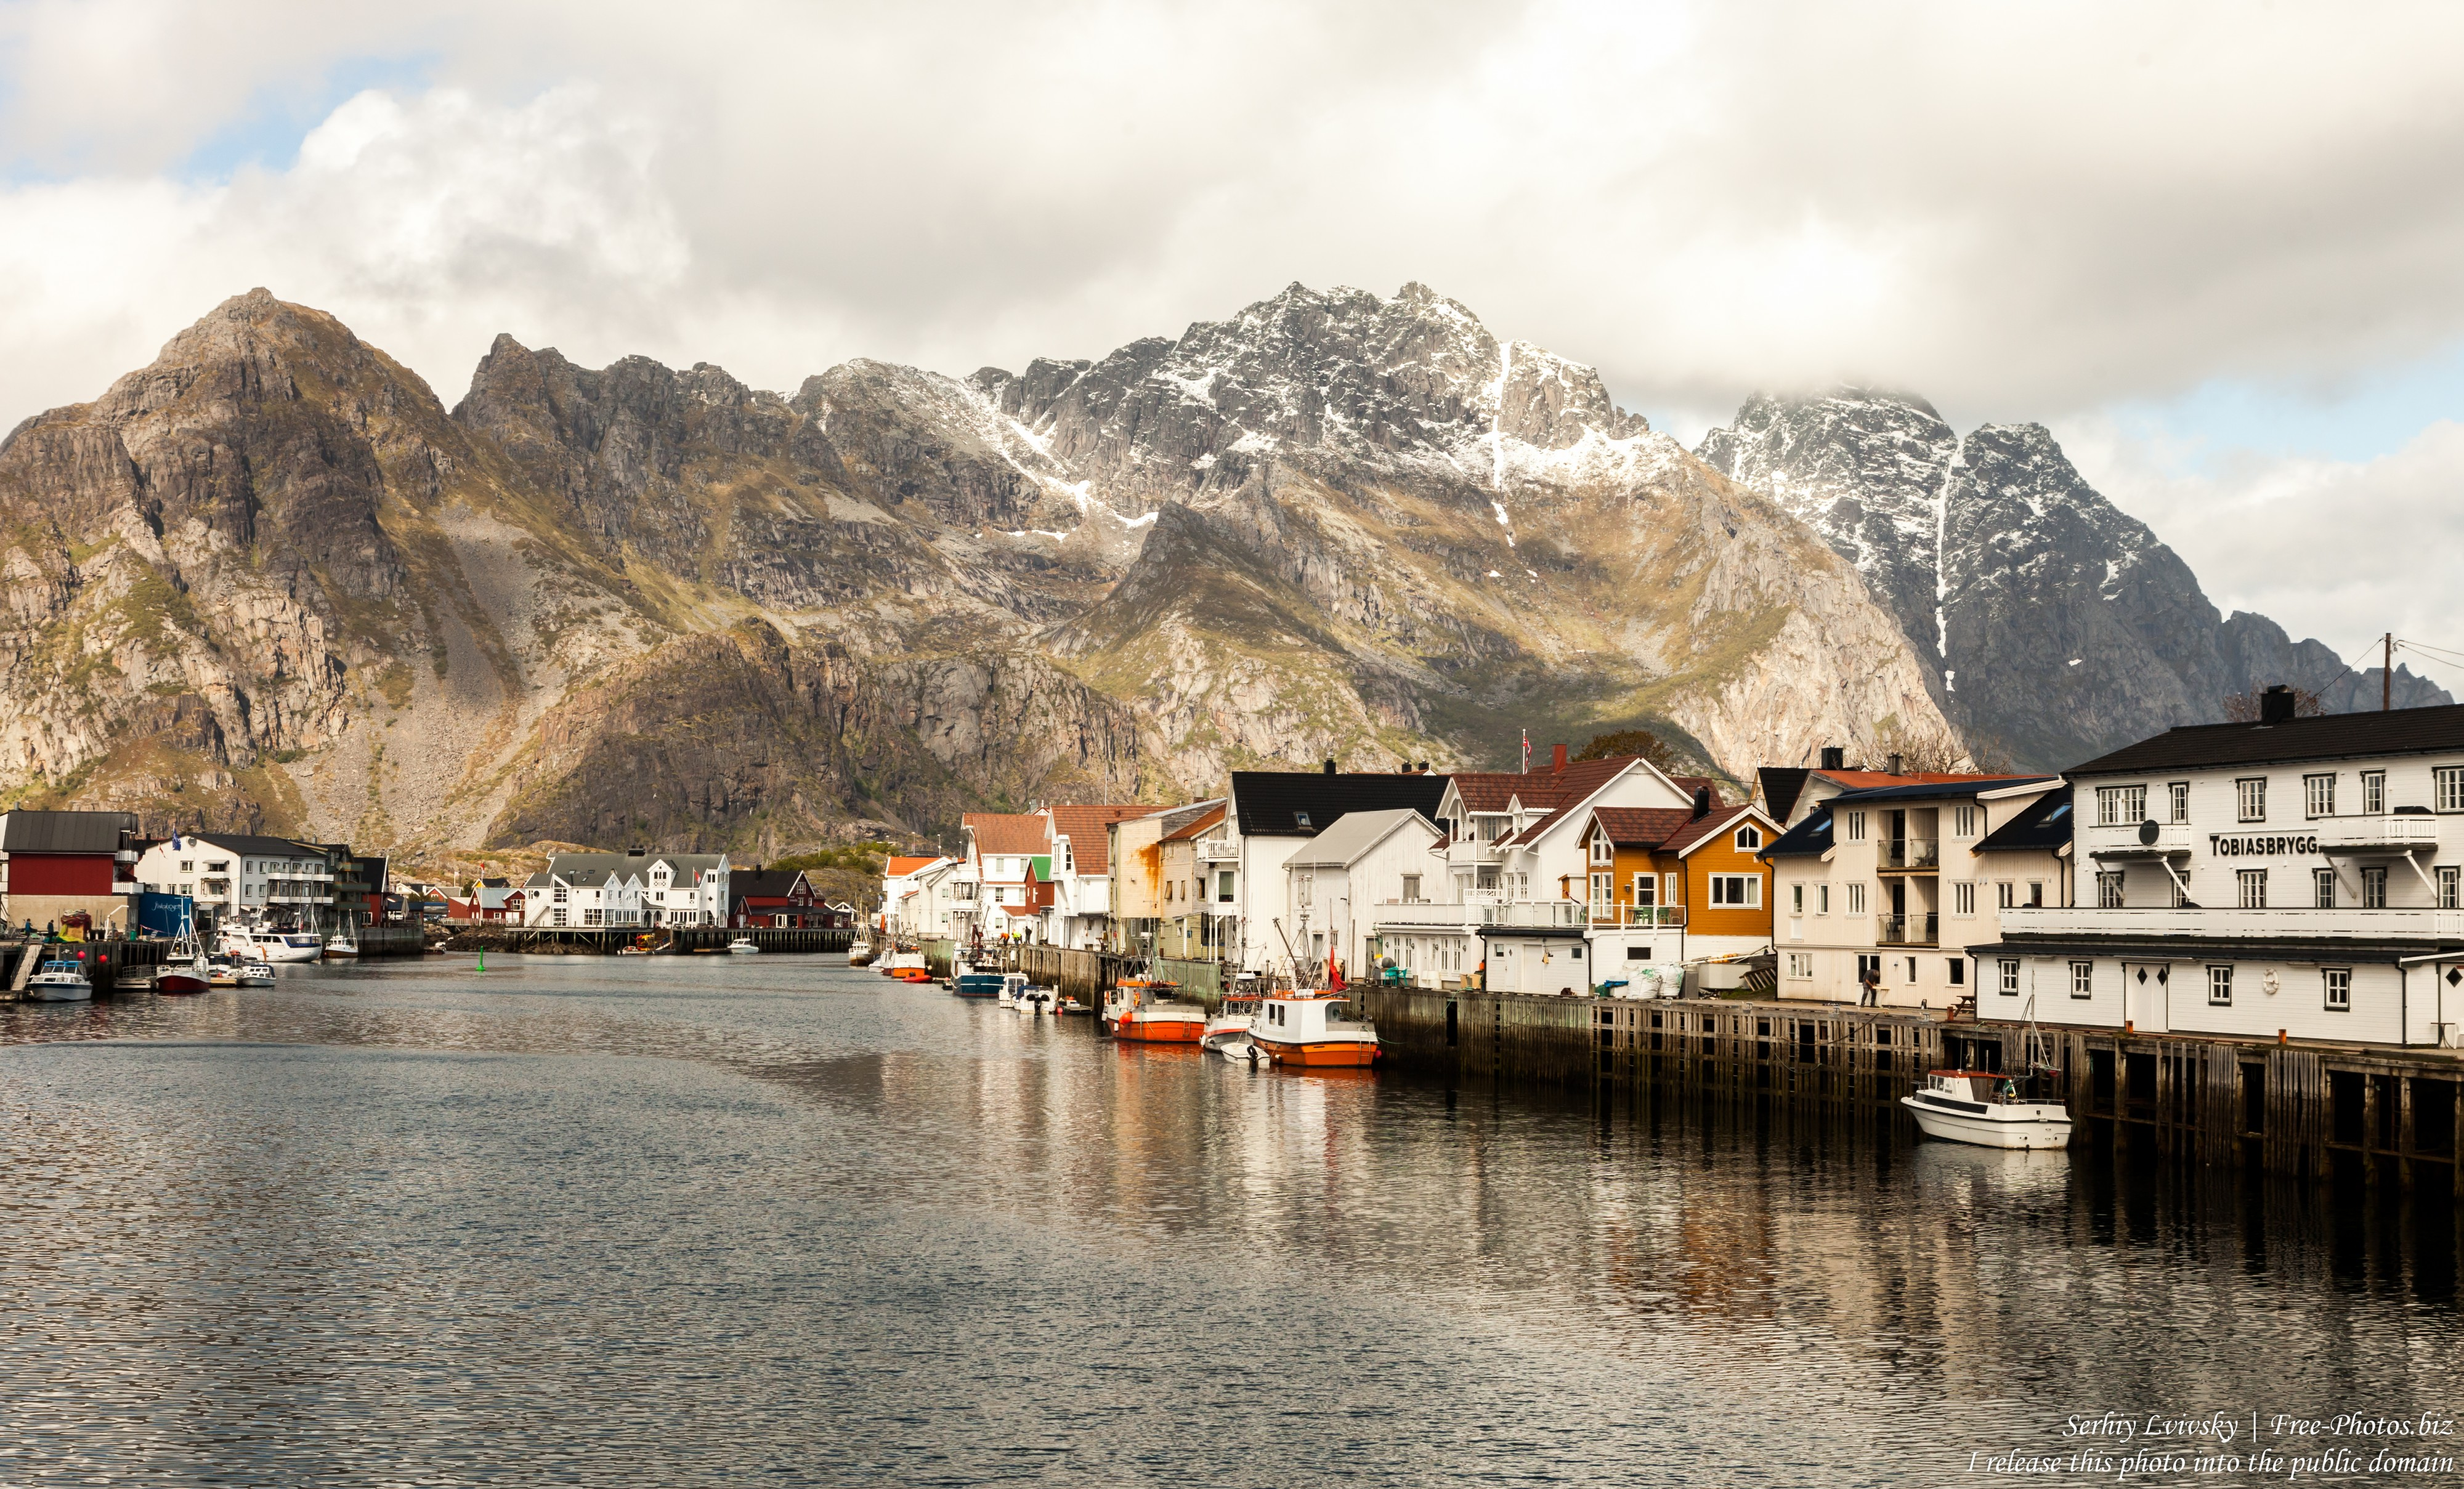 Lofoten, Norway photographed in June 2018 by Serhiy Lvivsky, picture 32